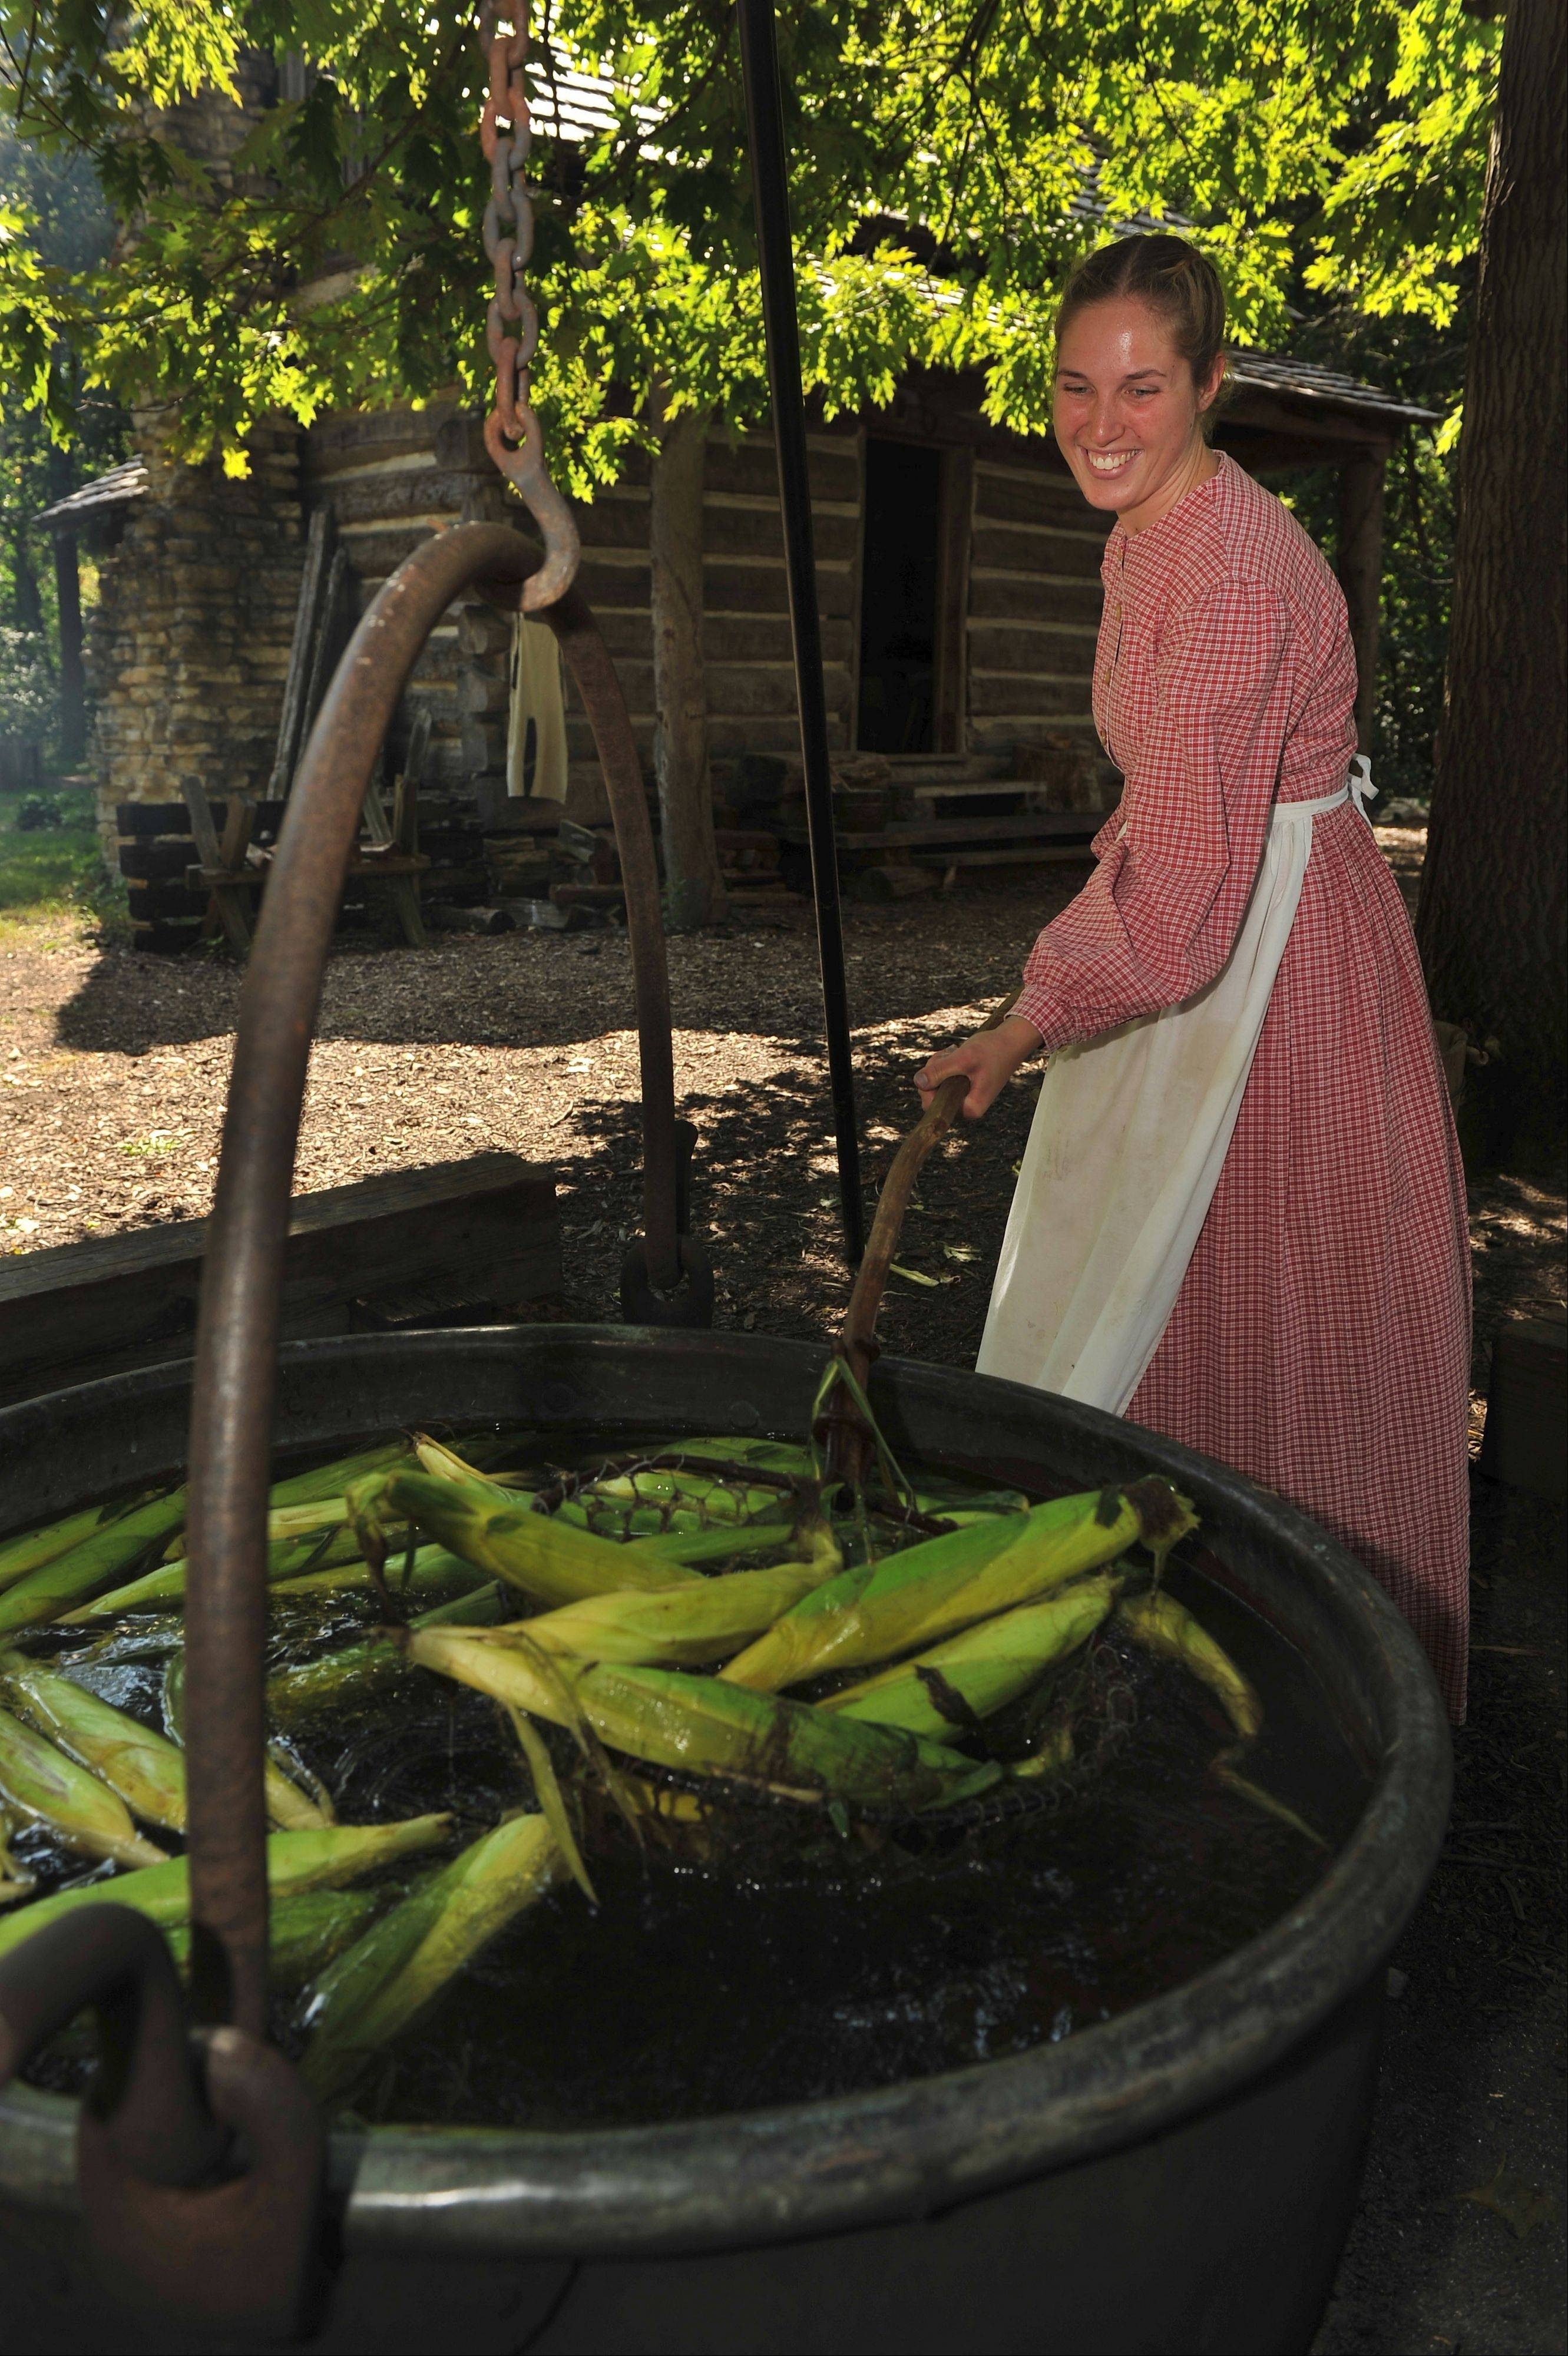 Sarah Vlakancic, a worker at Blackberry Farm, stirs a pot of corn on the farm.